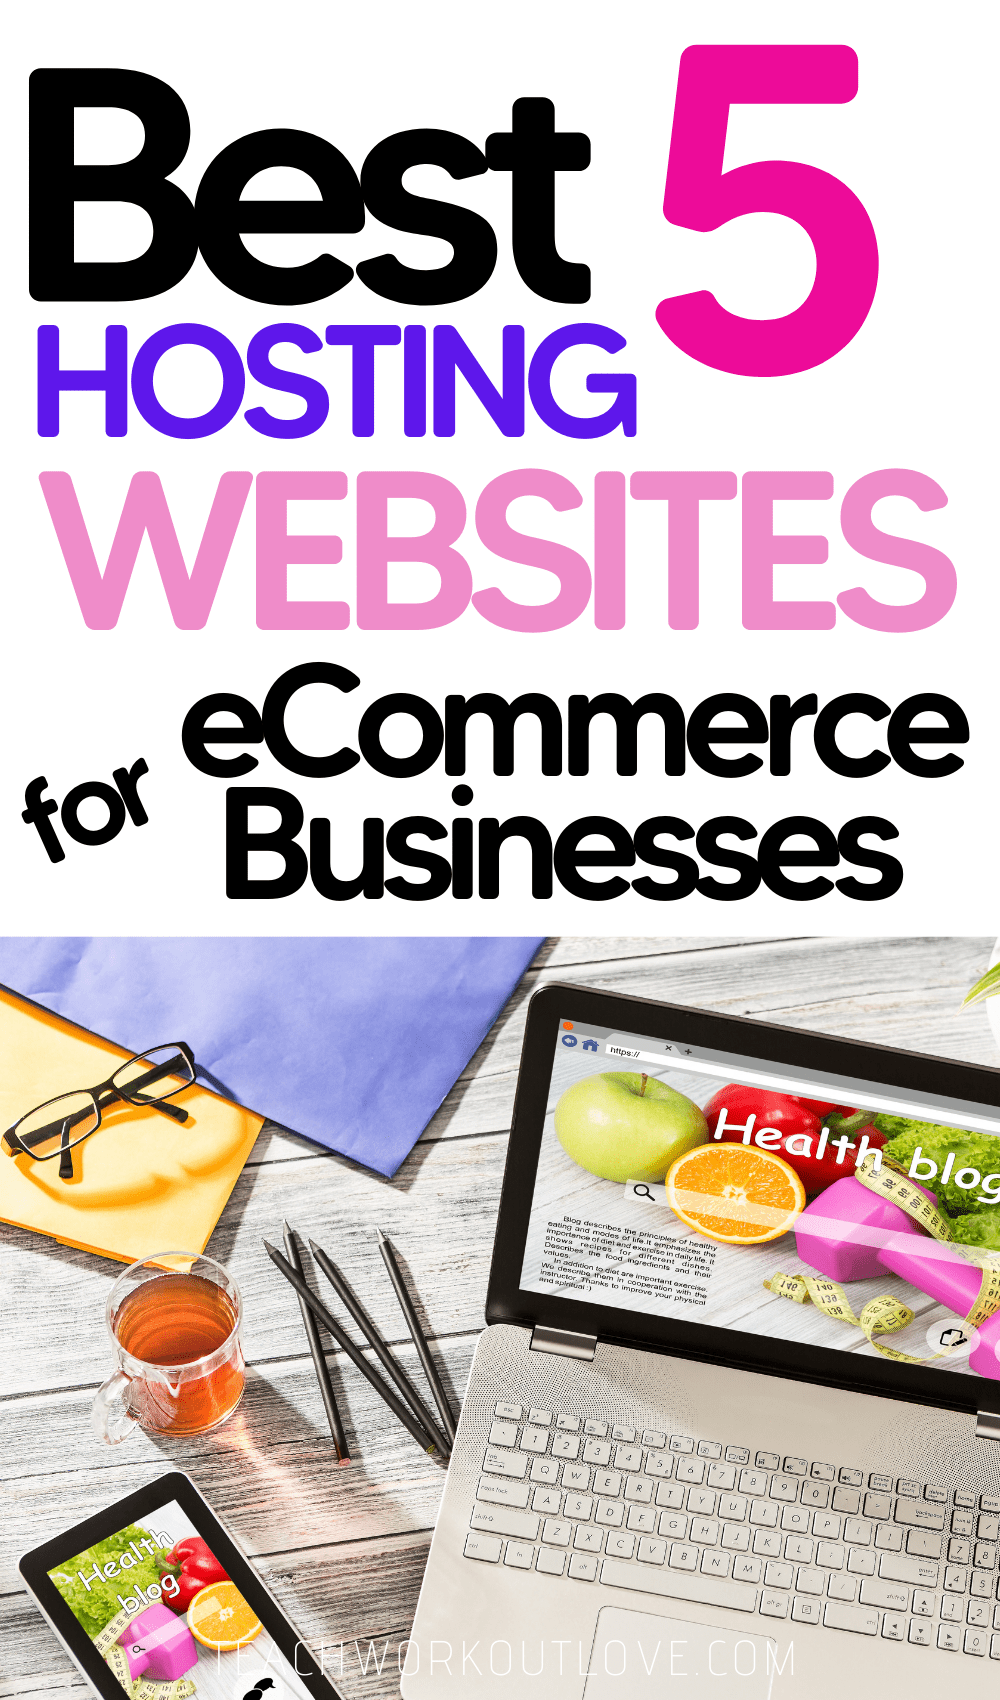 Web hosting provider that will allow you to create your eCommerce business. If you are looking for the best hosting website, read on!